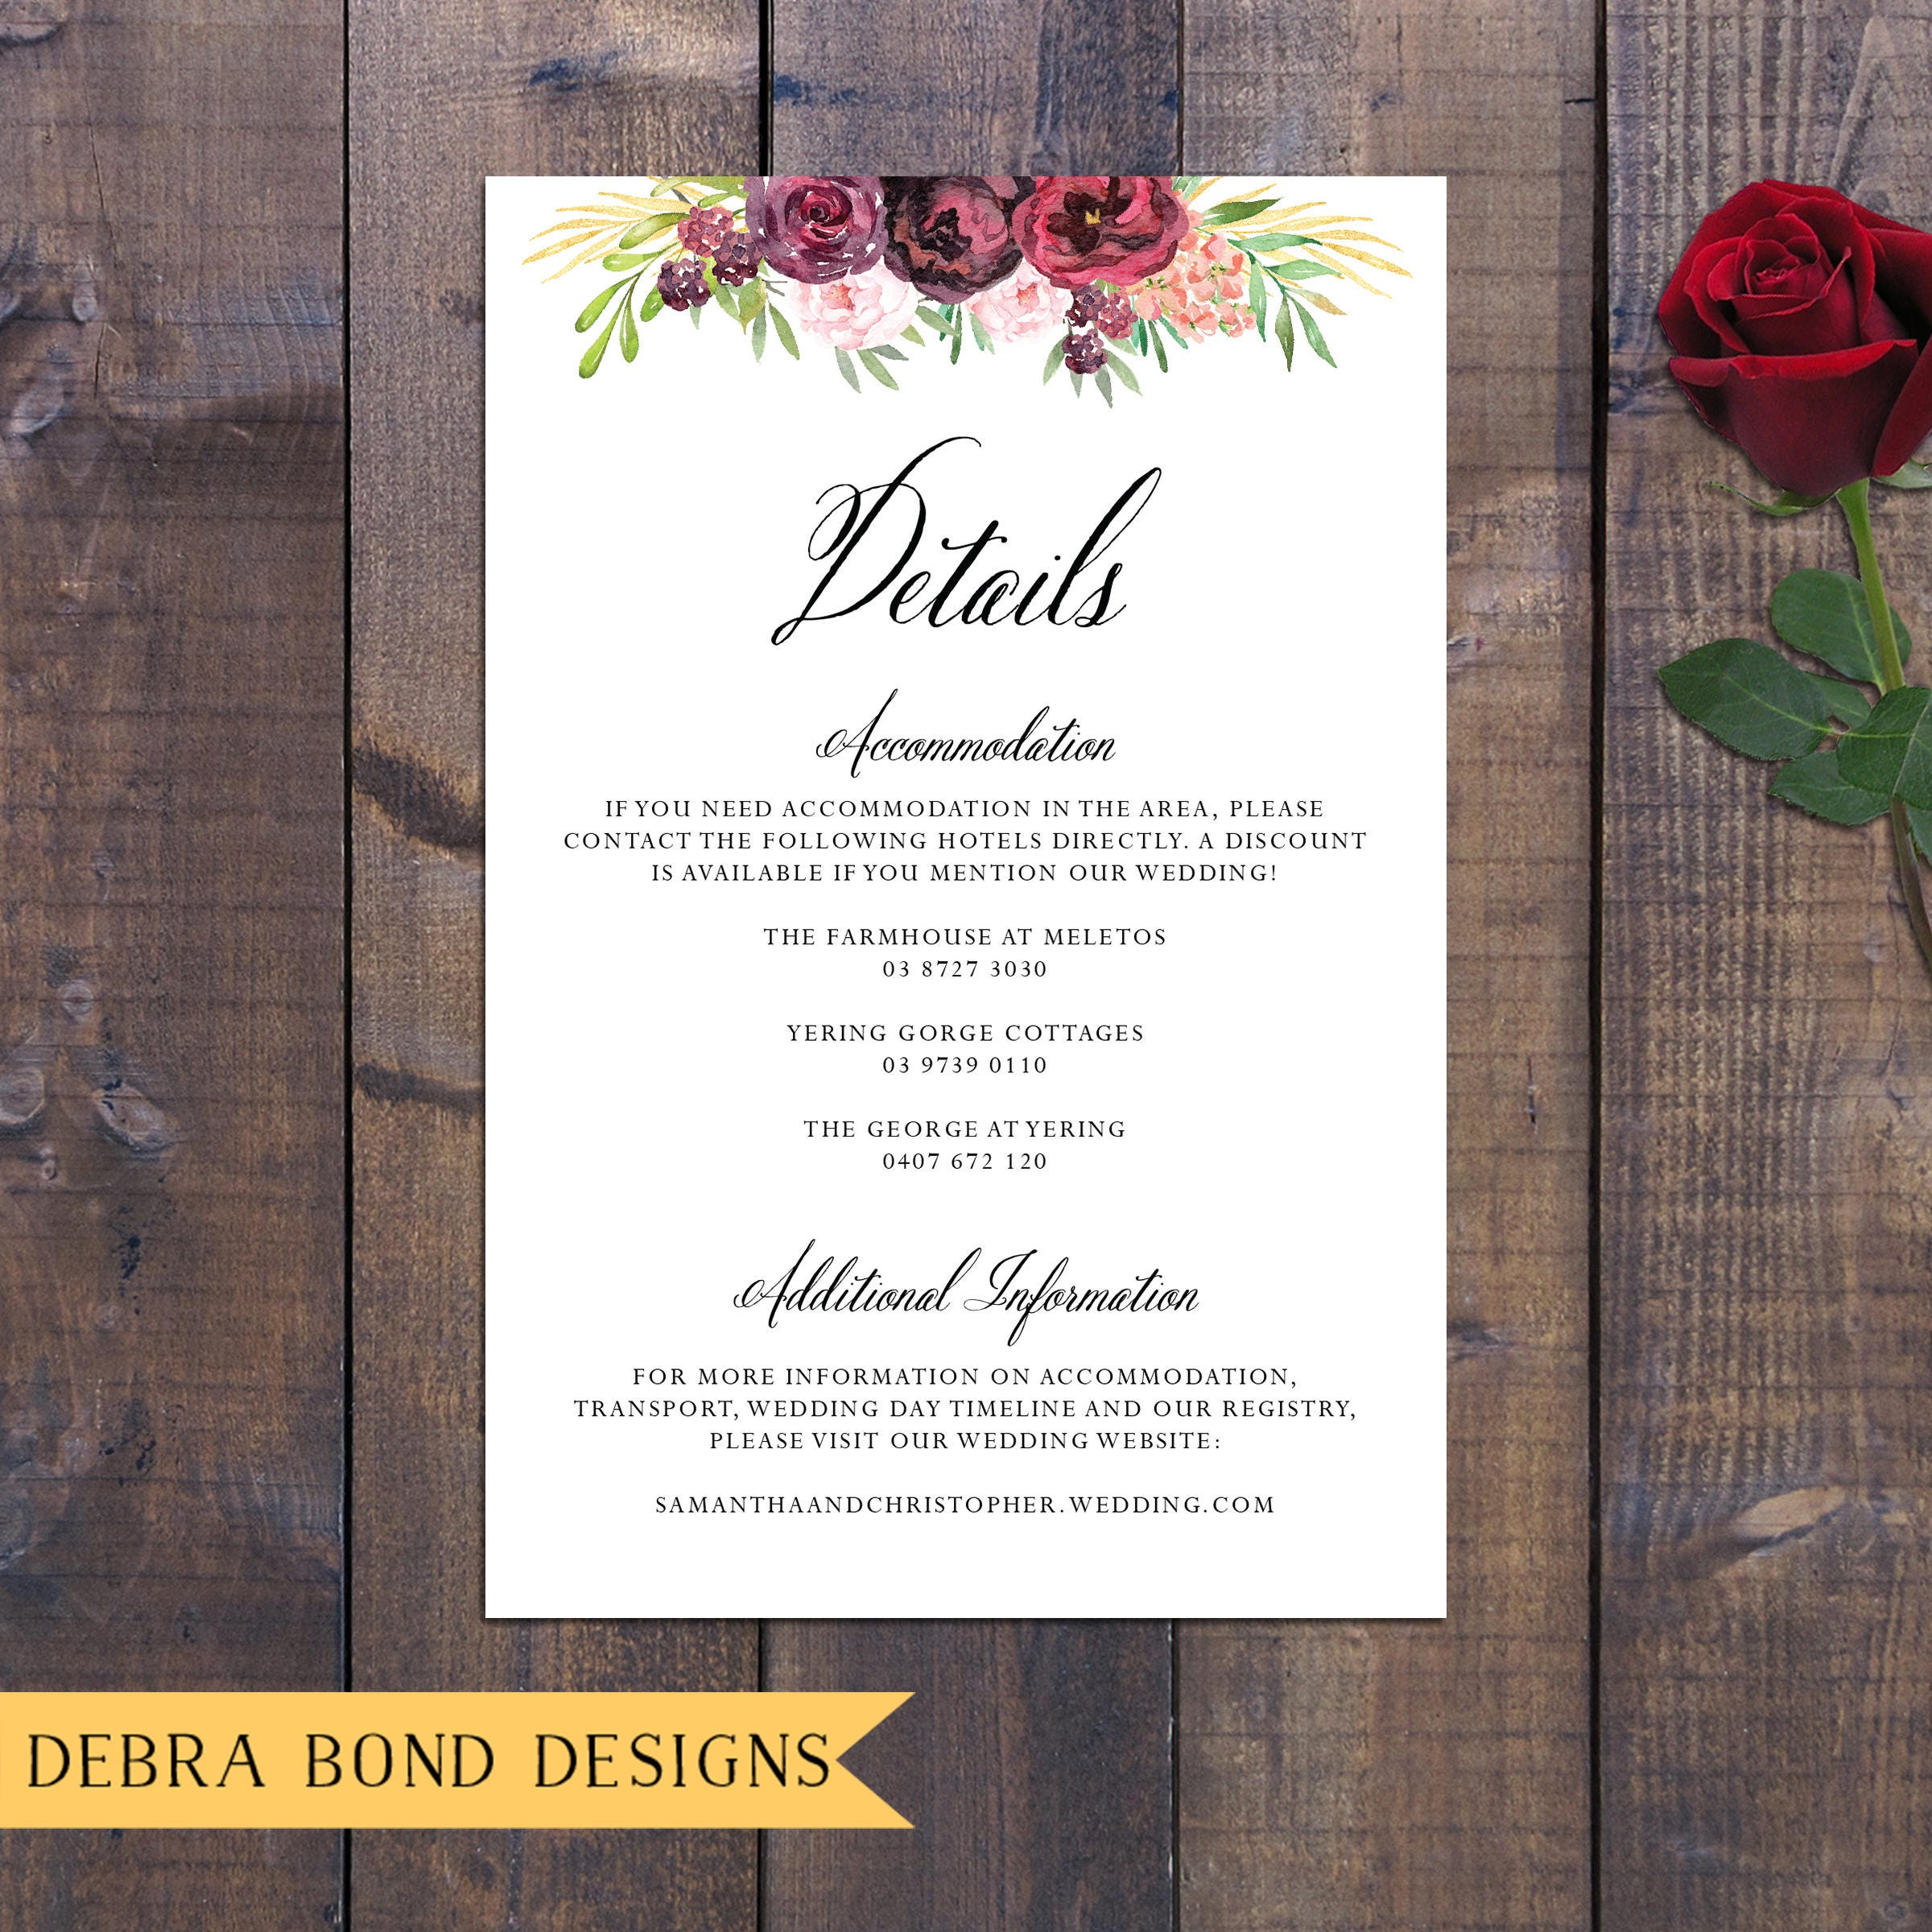 Wedding suite, wedding invitation, marsala burgundy dark roses ...